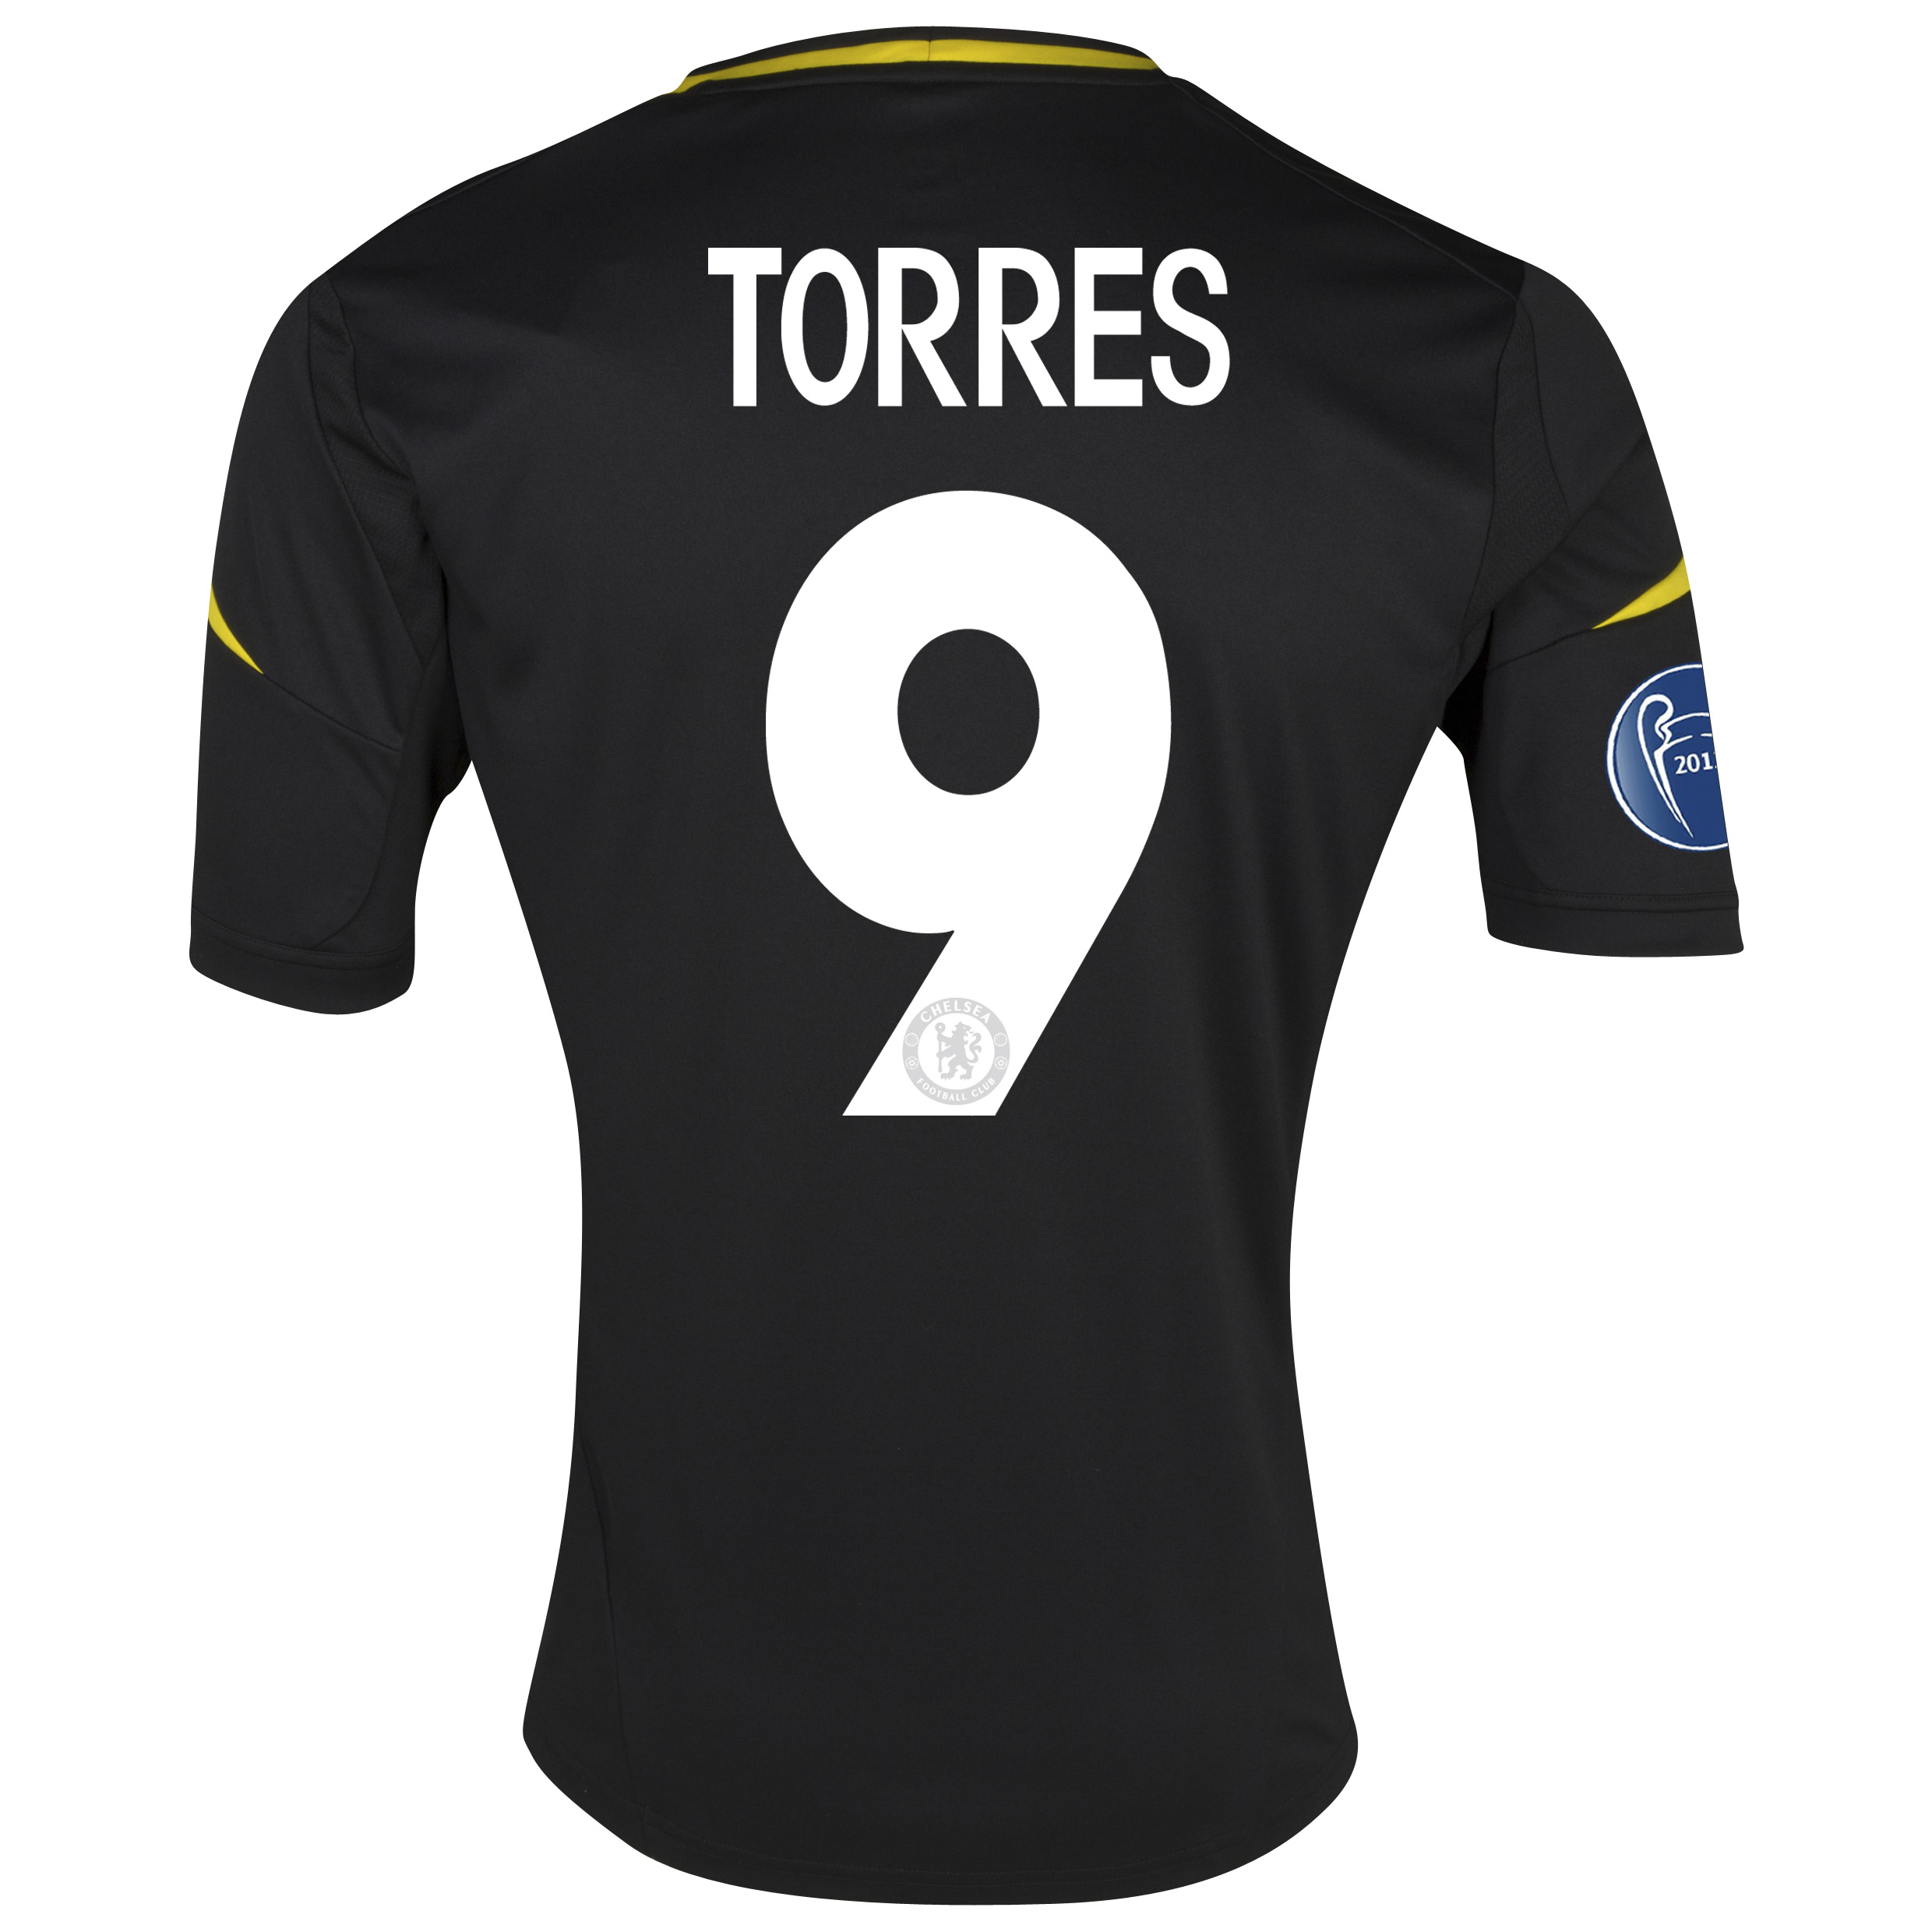 Chelsea UEFA Champions League Third Shirt 2012/13 - Youths with Torres 9 printing